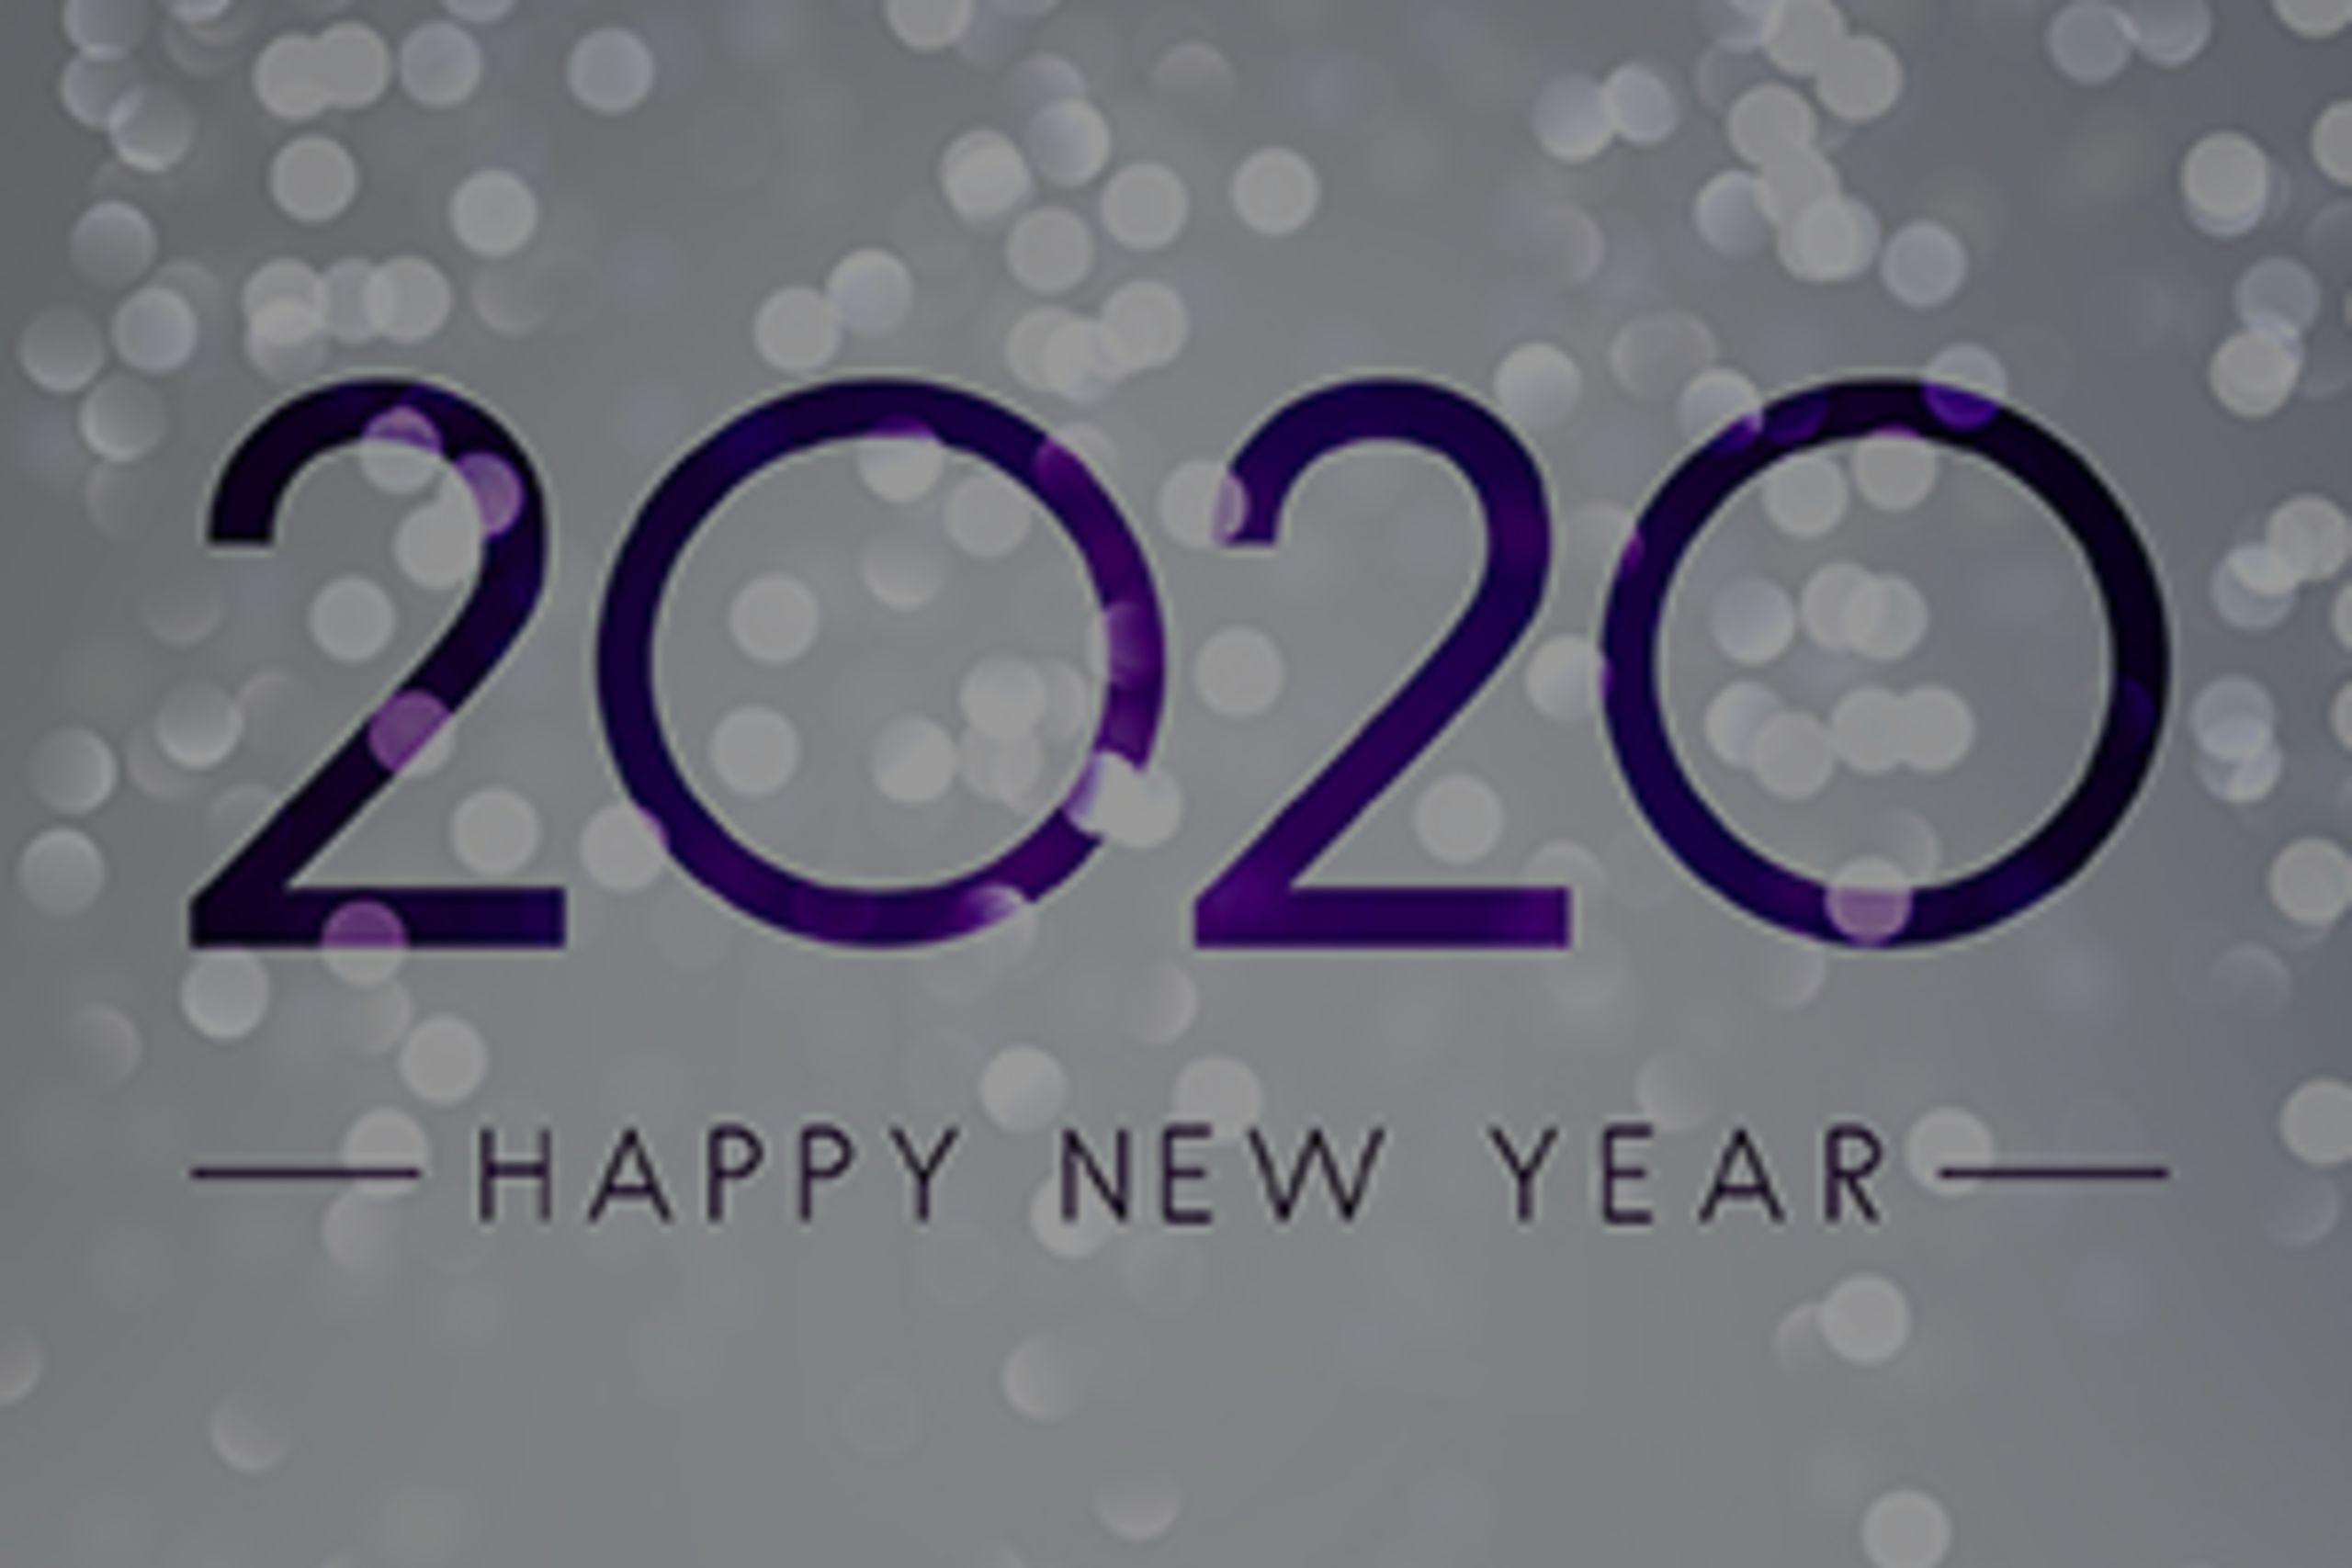 A New Decade and New Year! What's Our Vision for 2020?